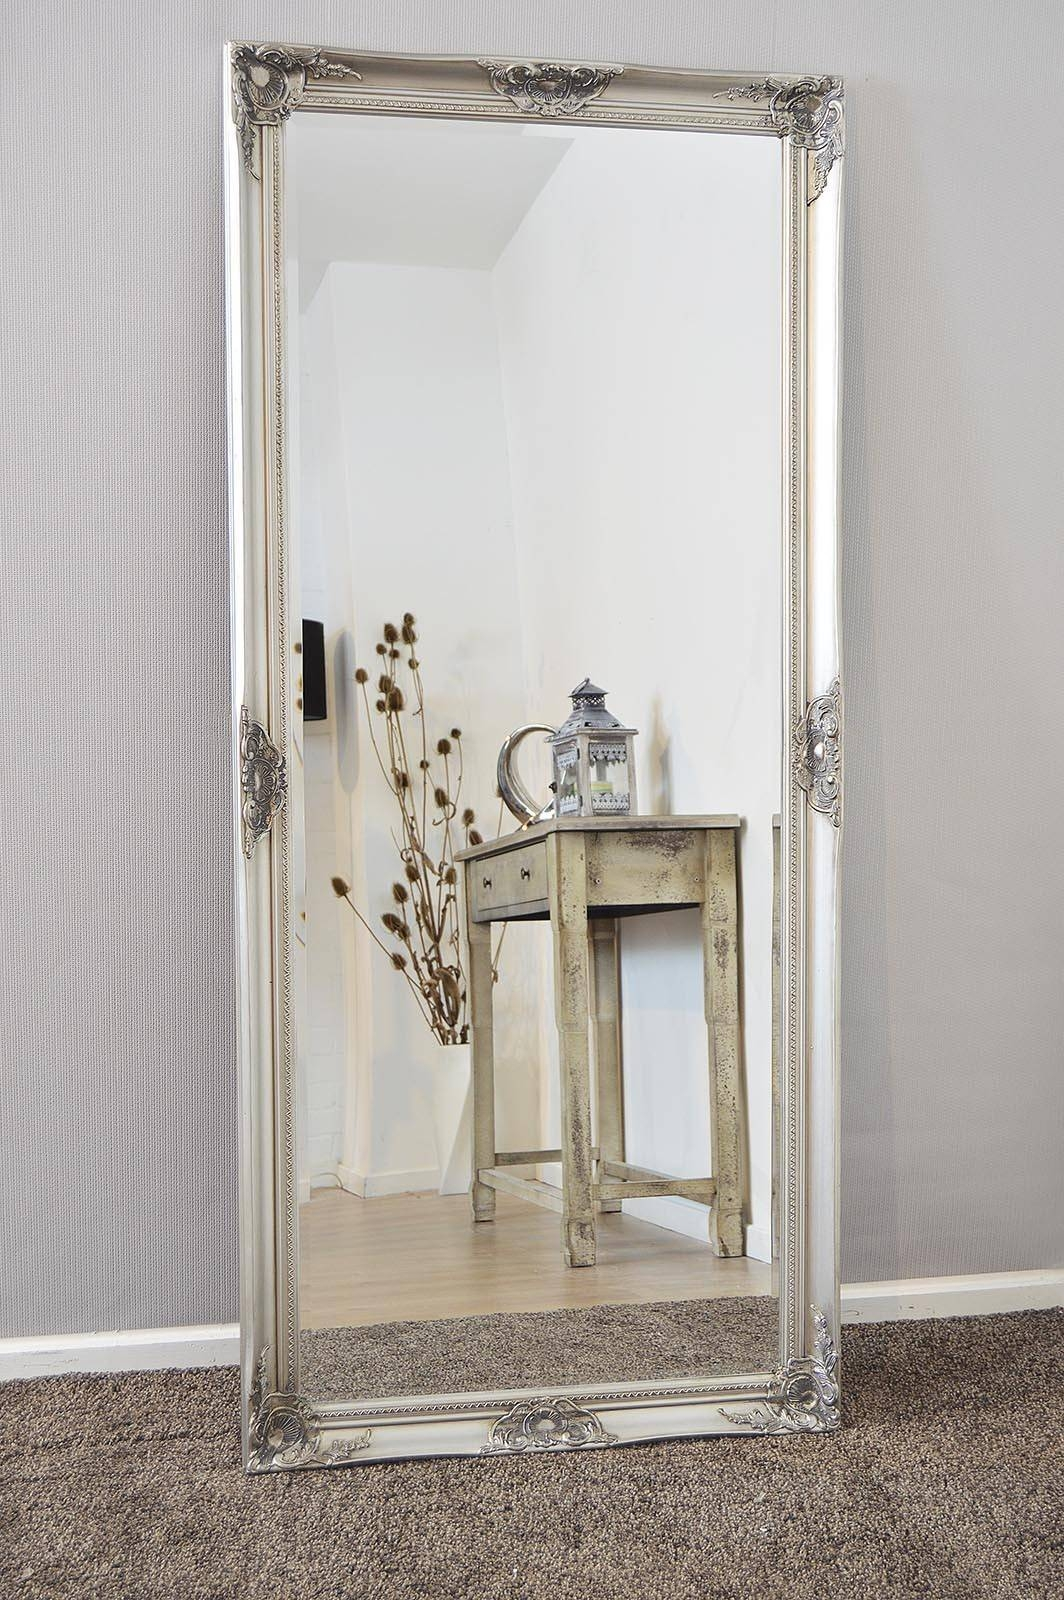 Shabby Chic Wall Mirror 40 Nice Decorating With Vintage Shabby throughout Large White Ornate Mirrors (Image 22 of 25)